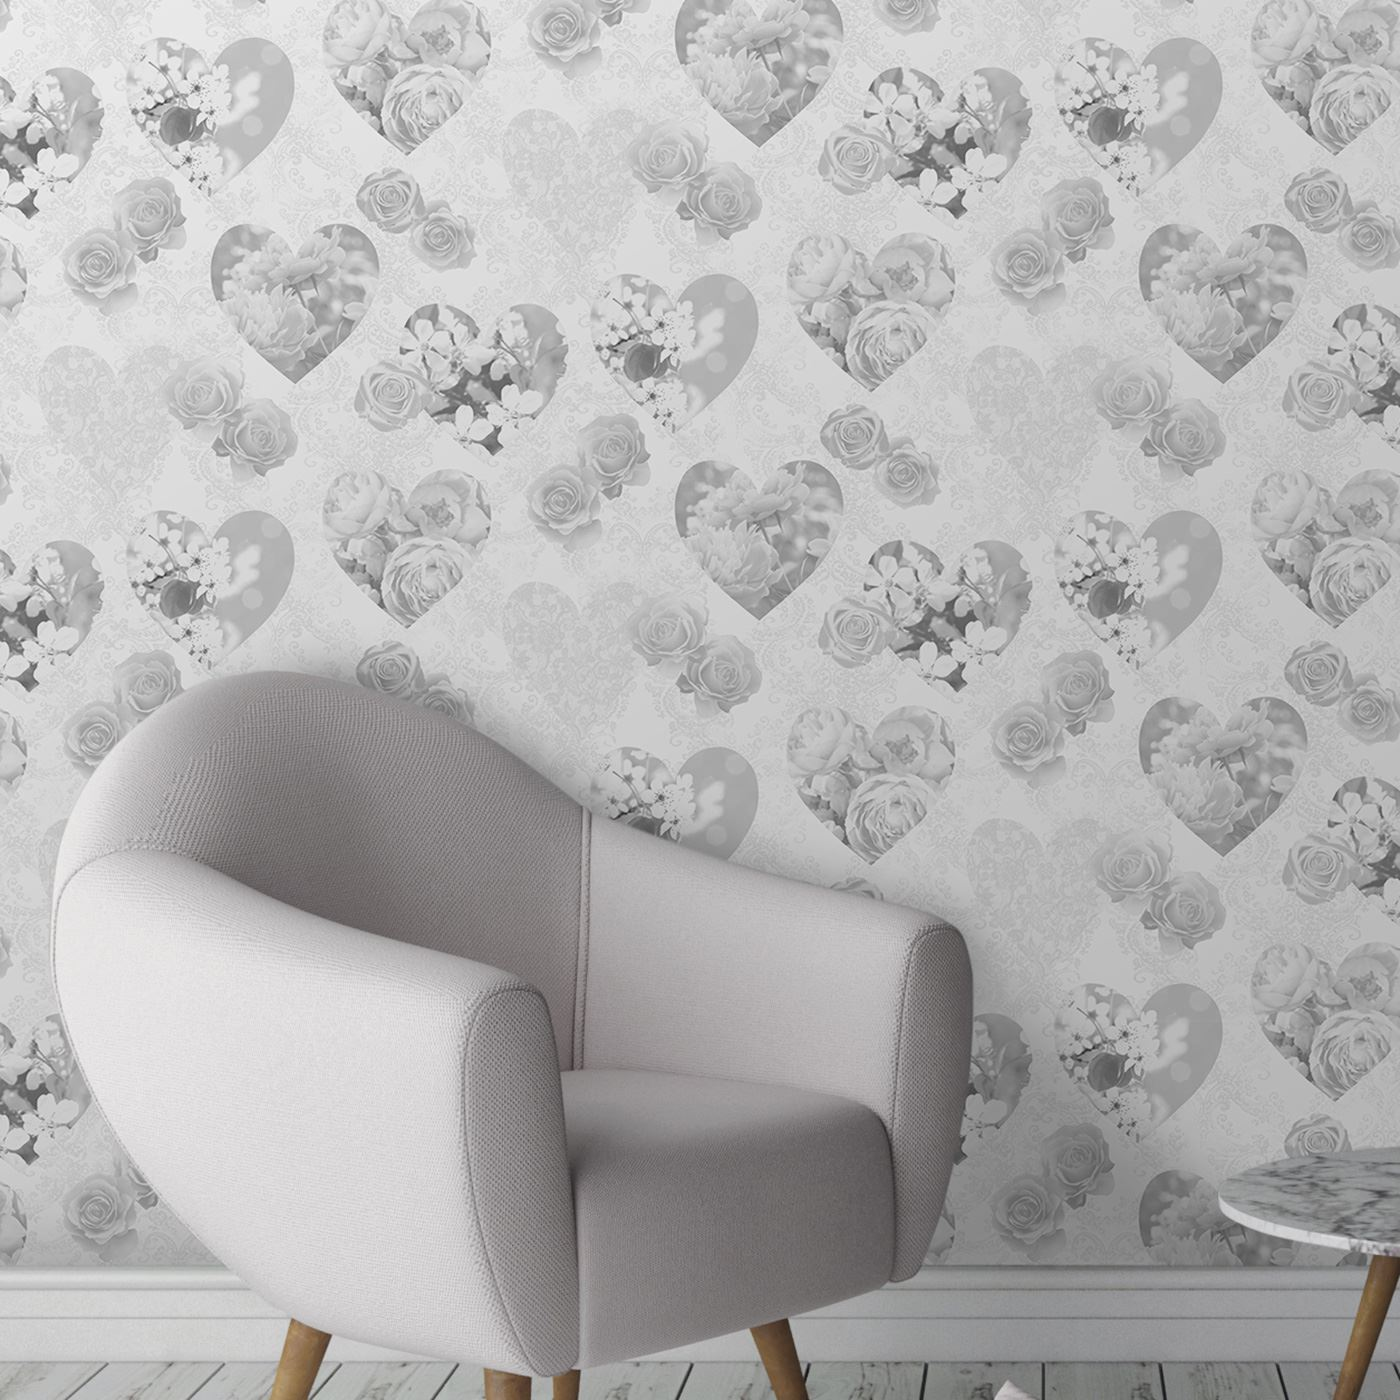 Details about HEART THEMED WALLPAPER GIRLS BEDROOM PINK VARIOUS DESIGNS  AVAILABLE NEW